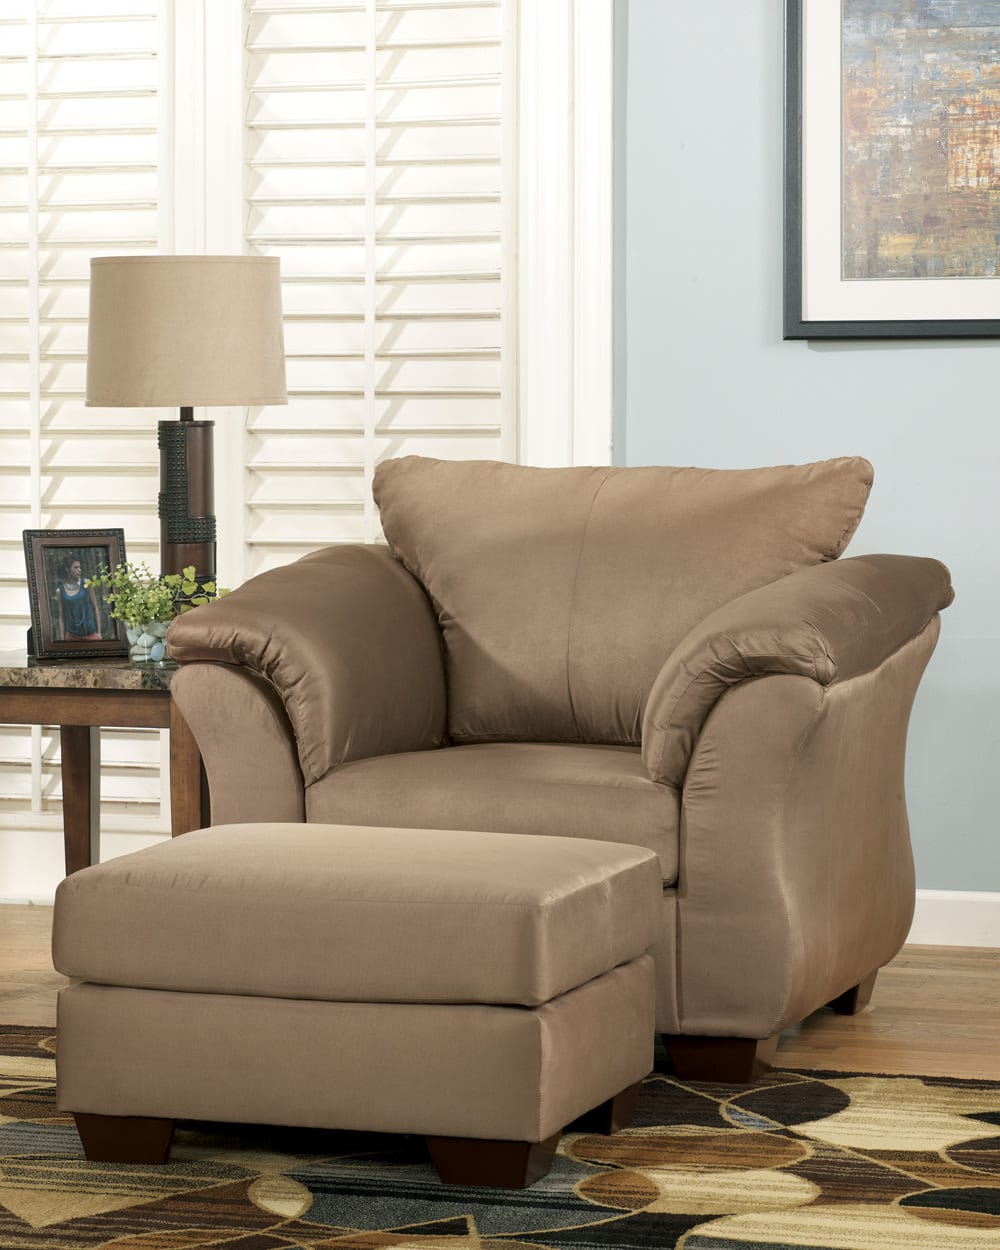 Fabulous Darcy Mocha Ottoman Signature Design By Ashley Furniture Home Remodeling Inspirations Basidirectenergyitoicom